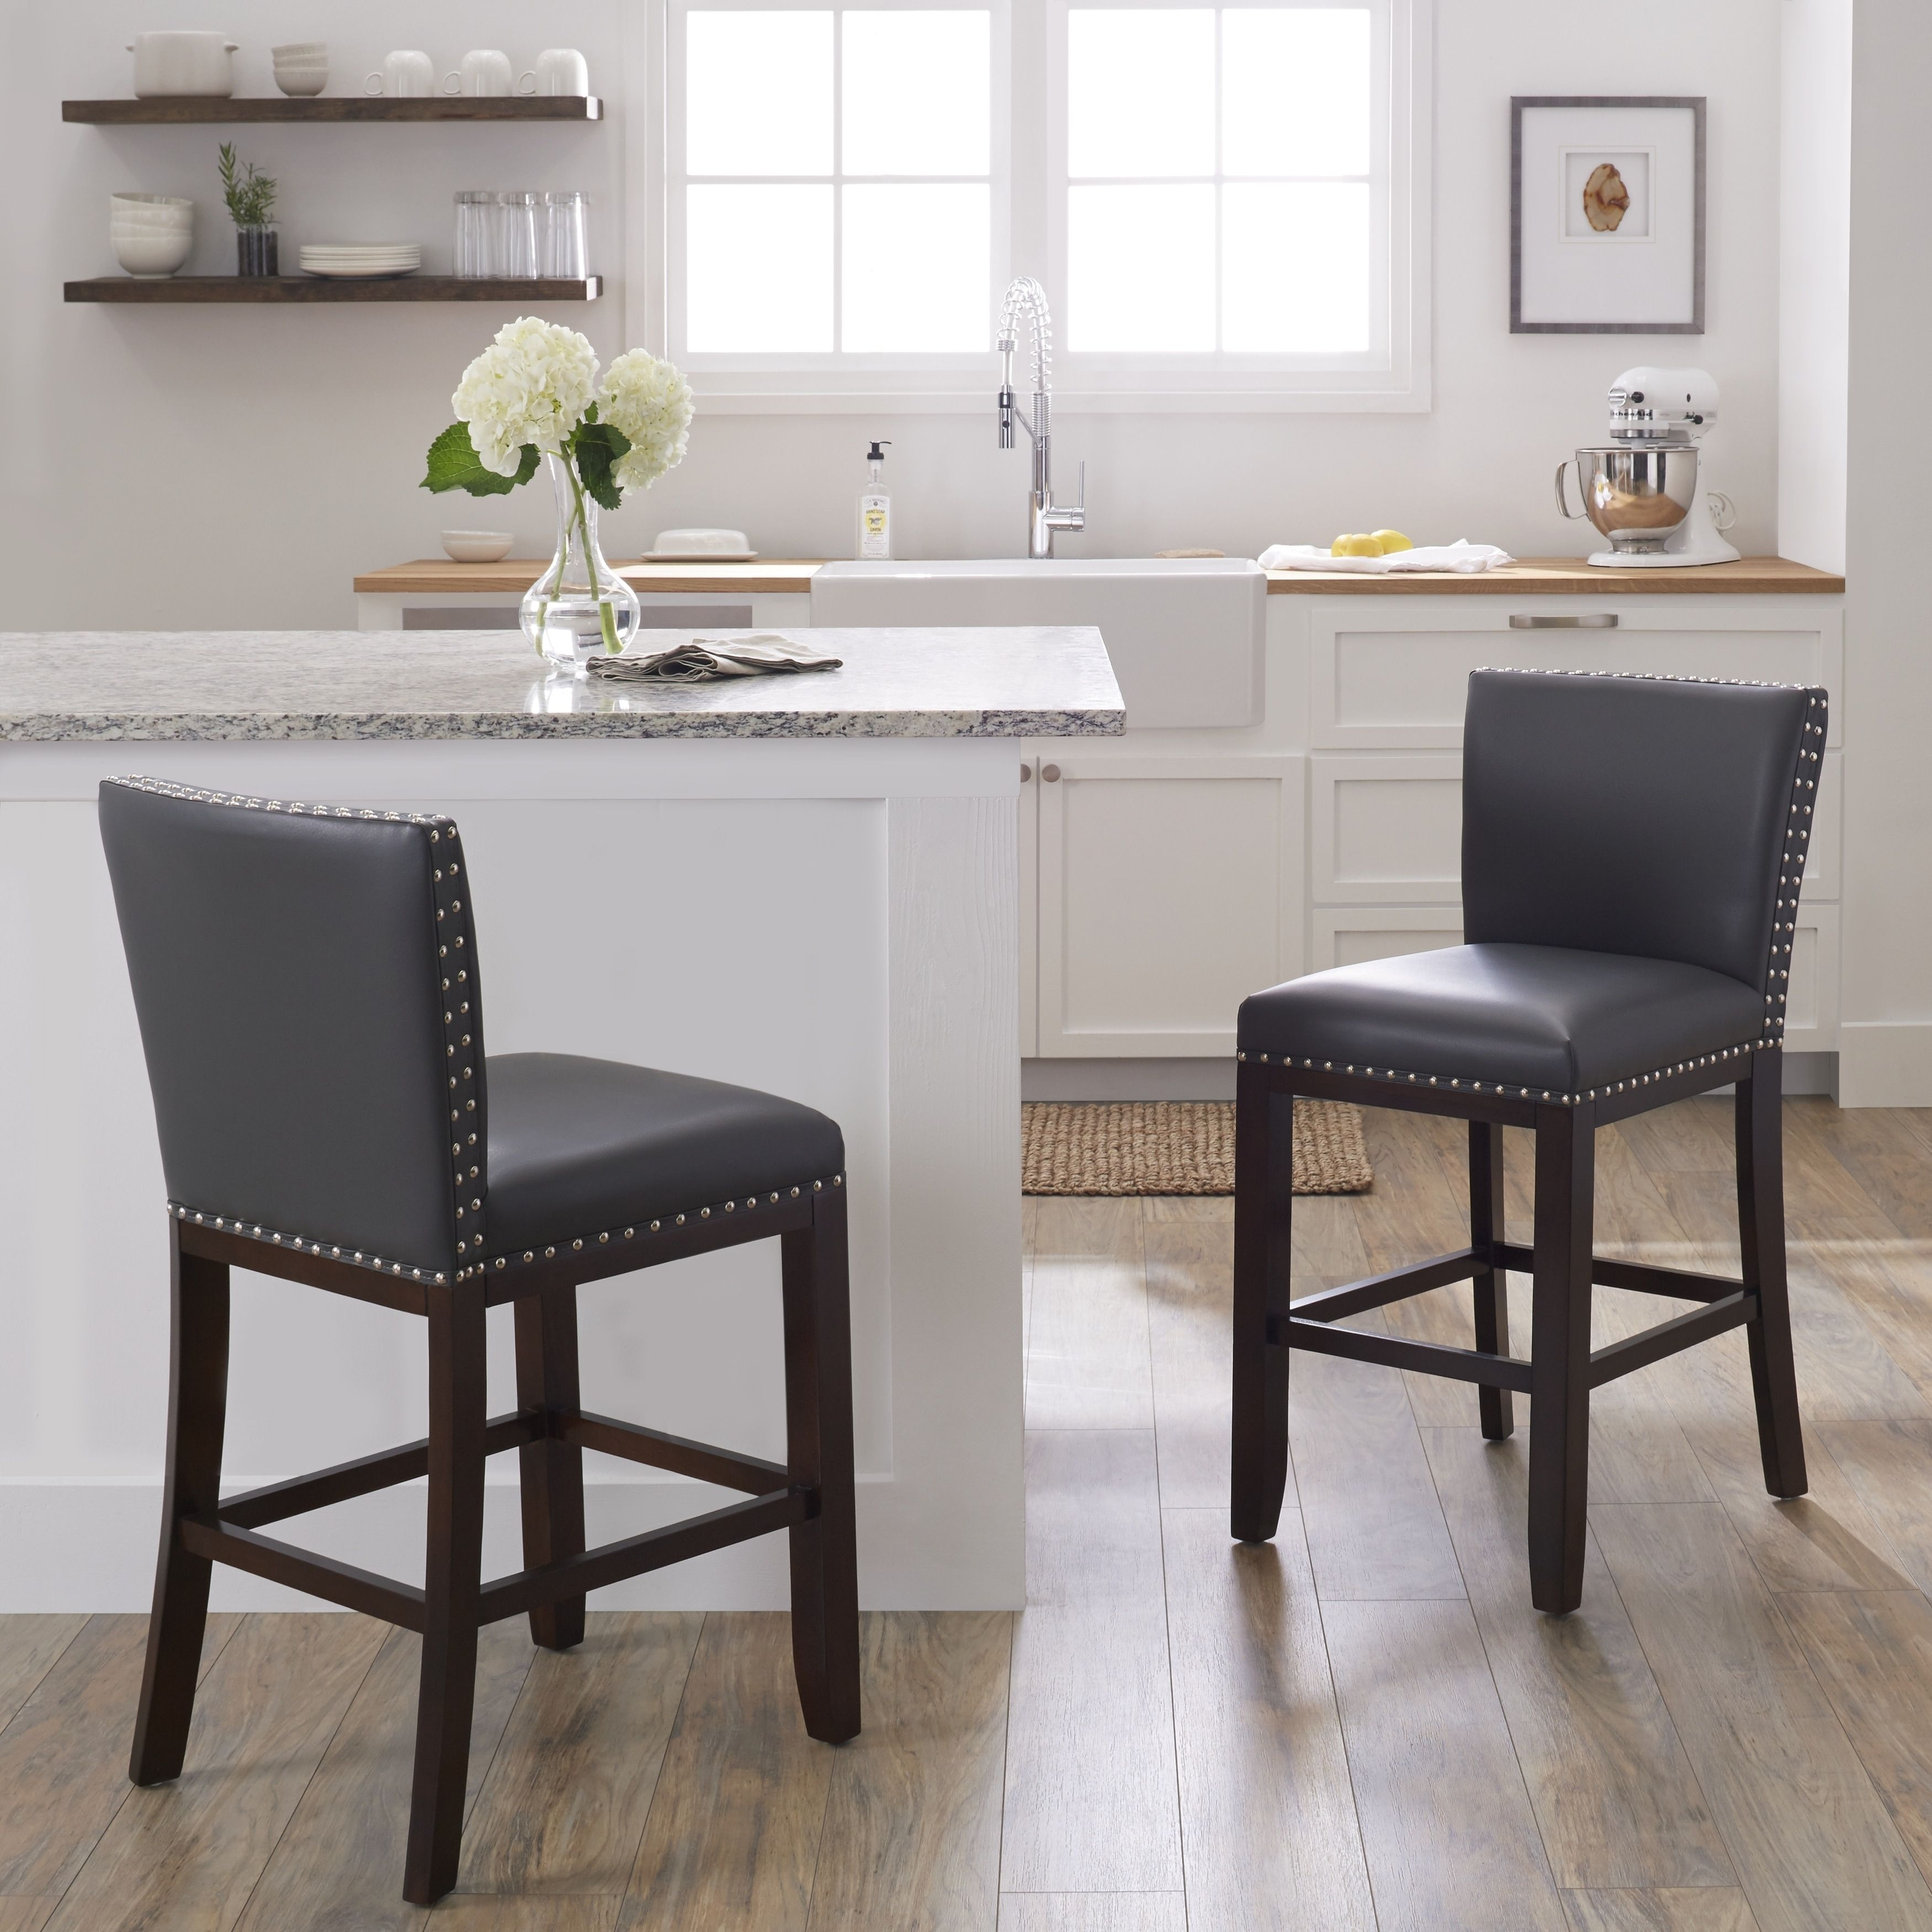 24 Inch Counter Chairs Booster For Kids Oliver James Hugo Stool Tisbury Brown Grey Set Of 2